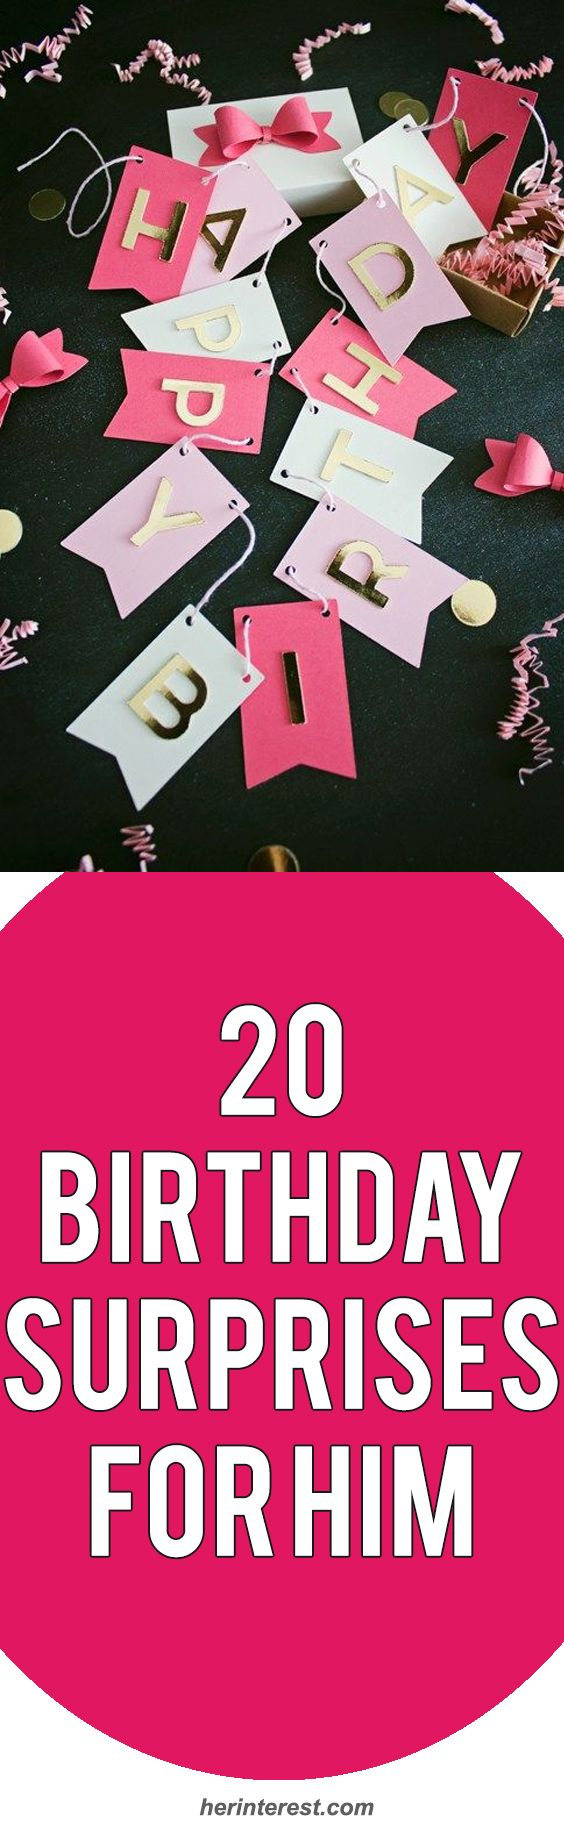 20 Birthday Surprises for Him